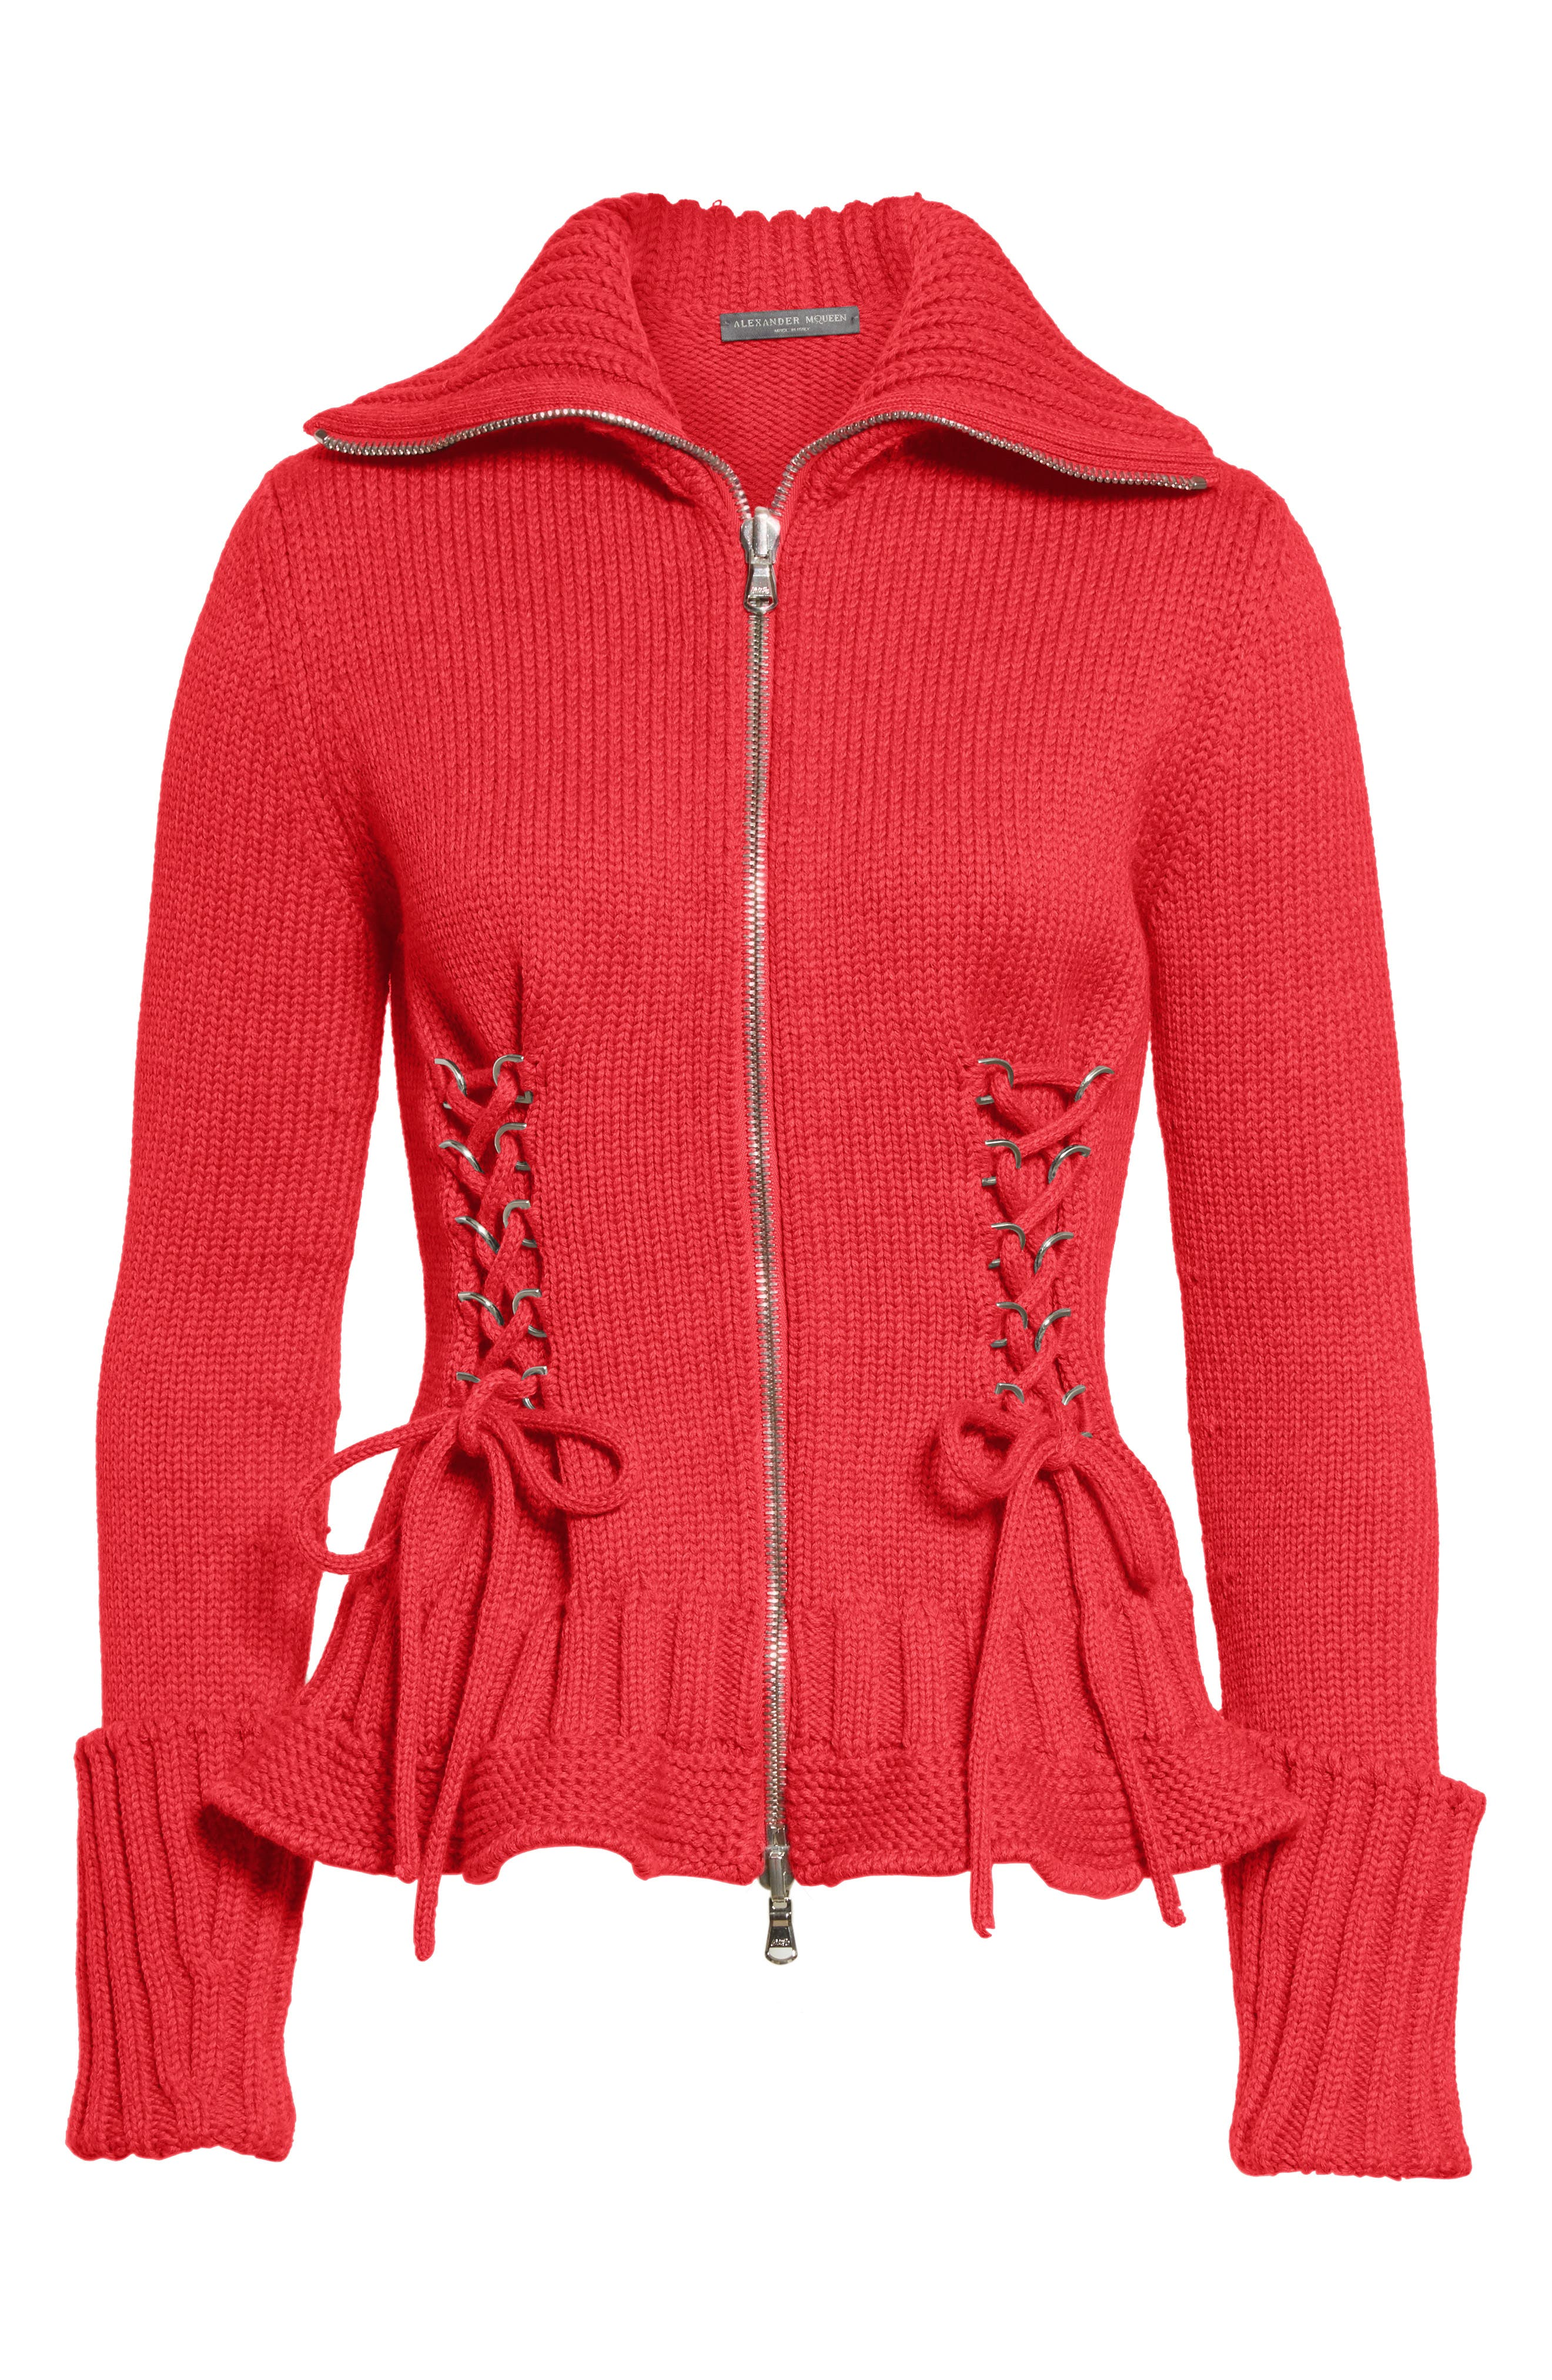 Lace-Up Wool Cardigan,                             Alternate thumbnail 4, color,                             Scarlet Red